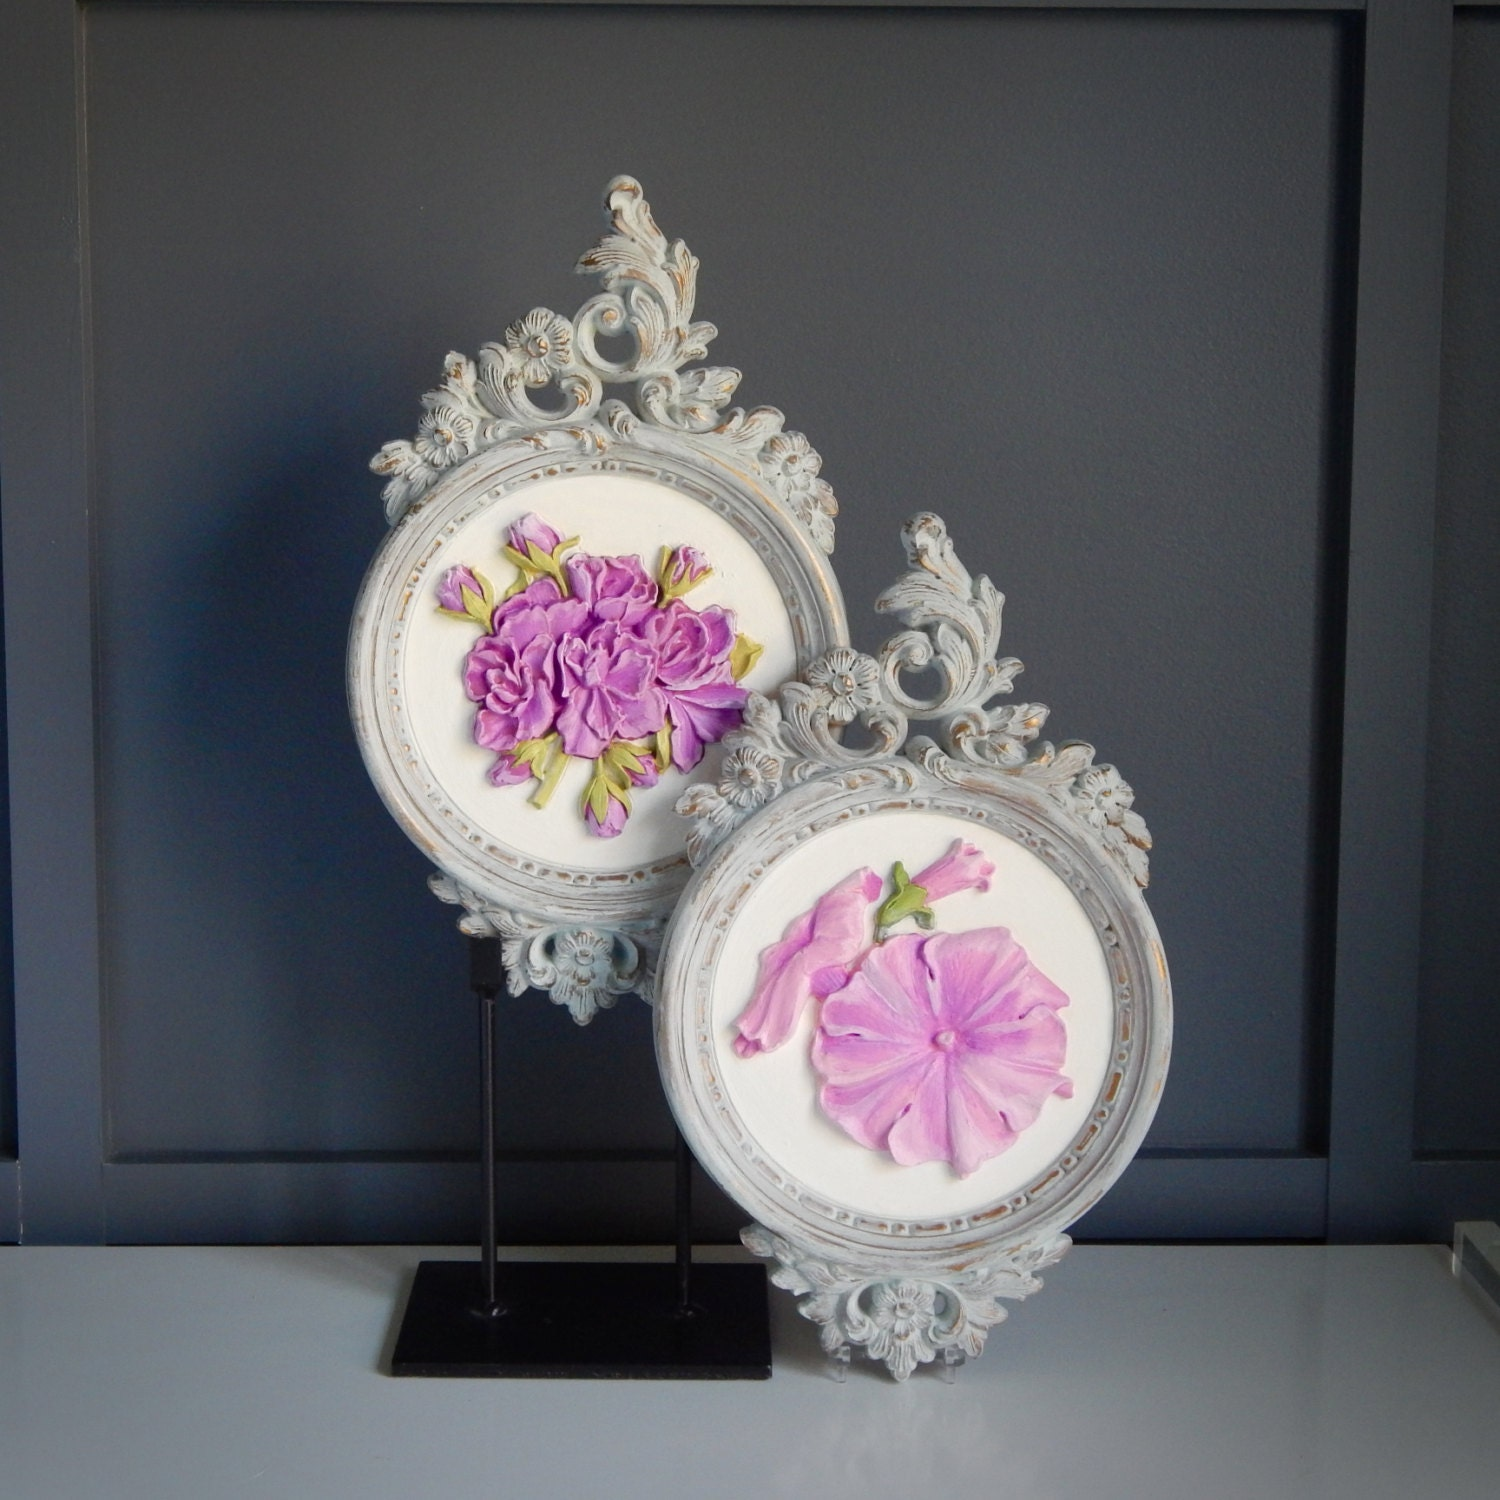 Wall Decor Shabby Chic : Pair of shabby chic floral wall decor by nashvillekindoflife